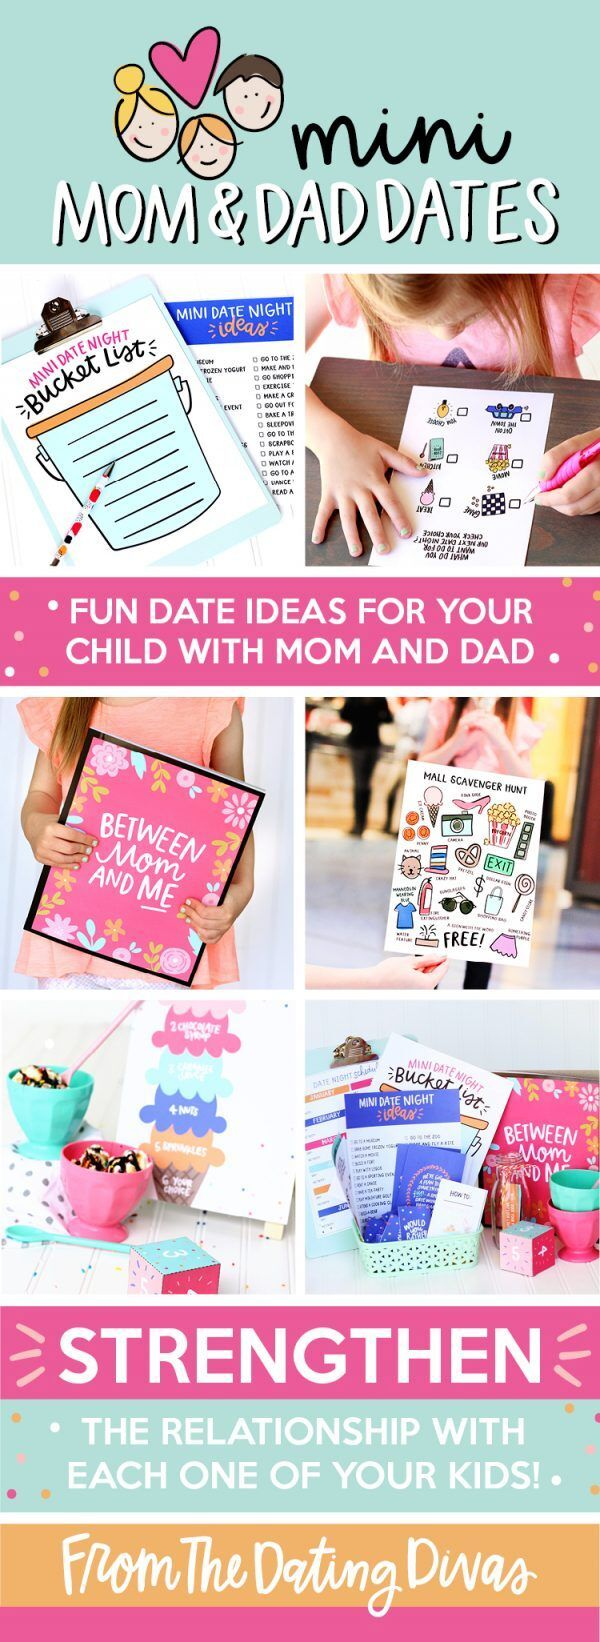 Making an effort to spend quality, one-on-one time with your kiddos is so important but I feel like I always have trouble coming up with ways to make it fun for both of us. I'm so excited that I found a product from The Dating Divas filled with ideas to make a meaningful and memorable night with each of my little ones. All the creative work is done and all I have to do is print - which means even more quality time with my son!